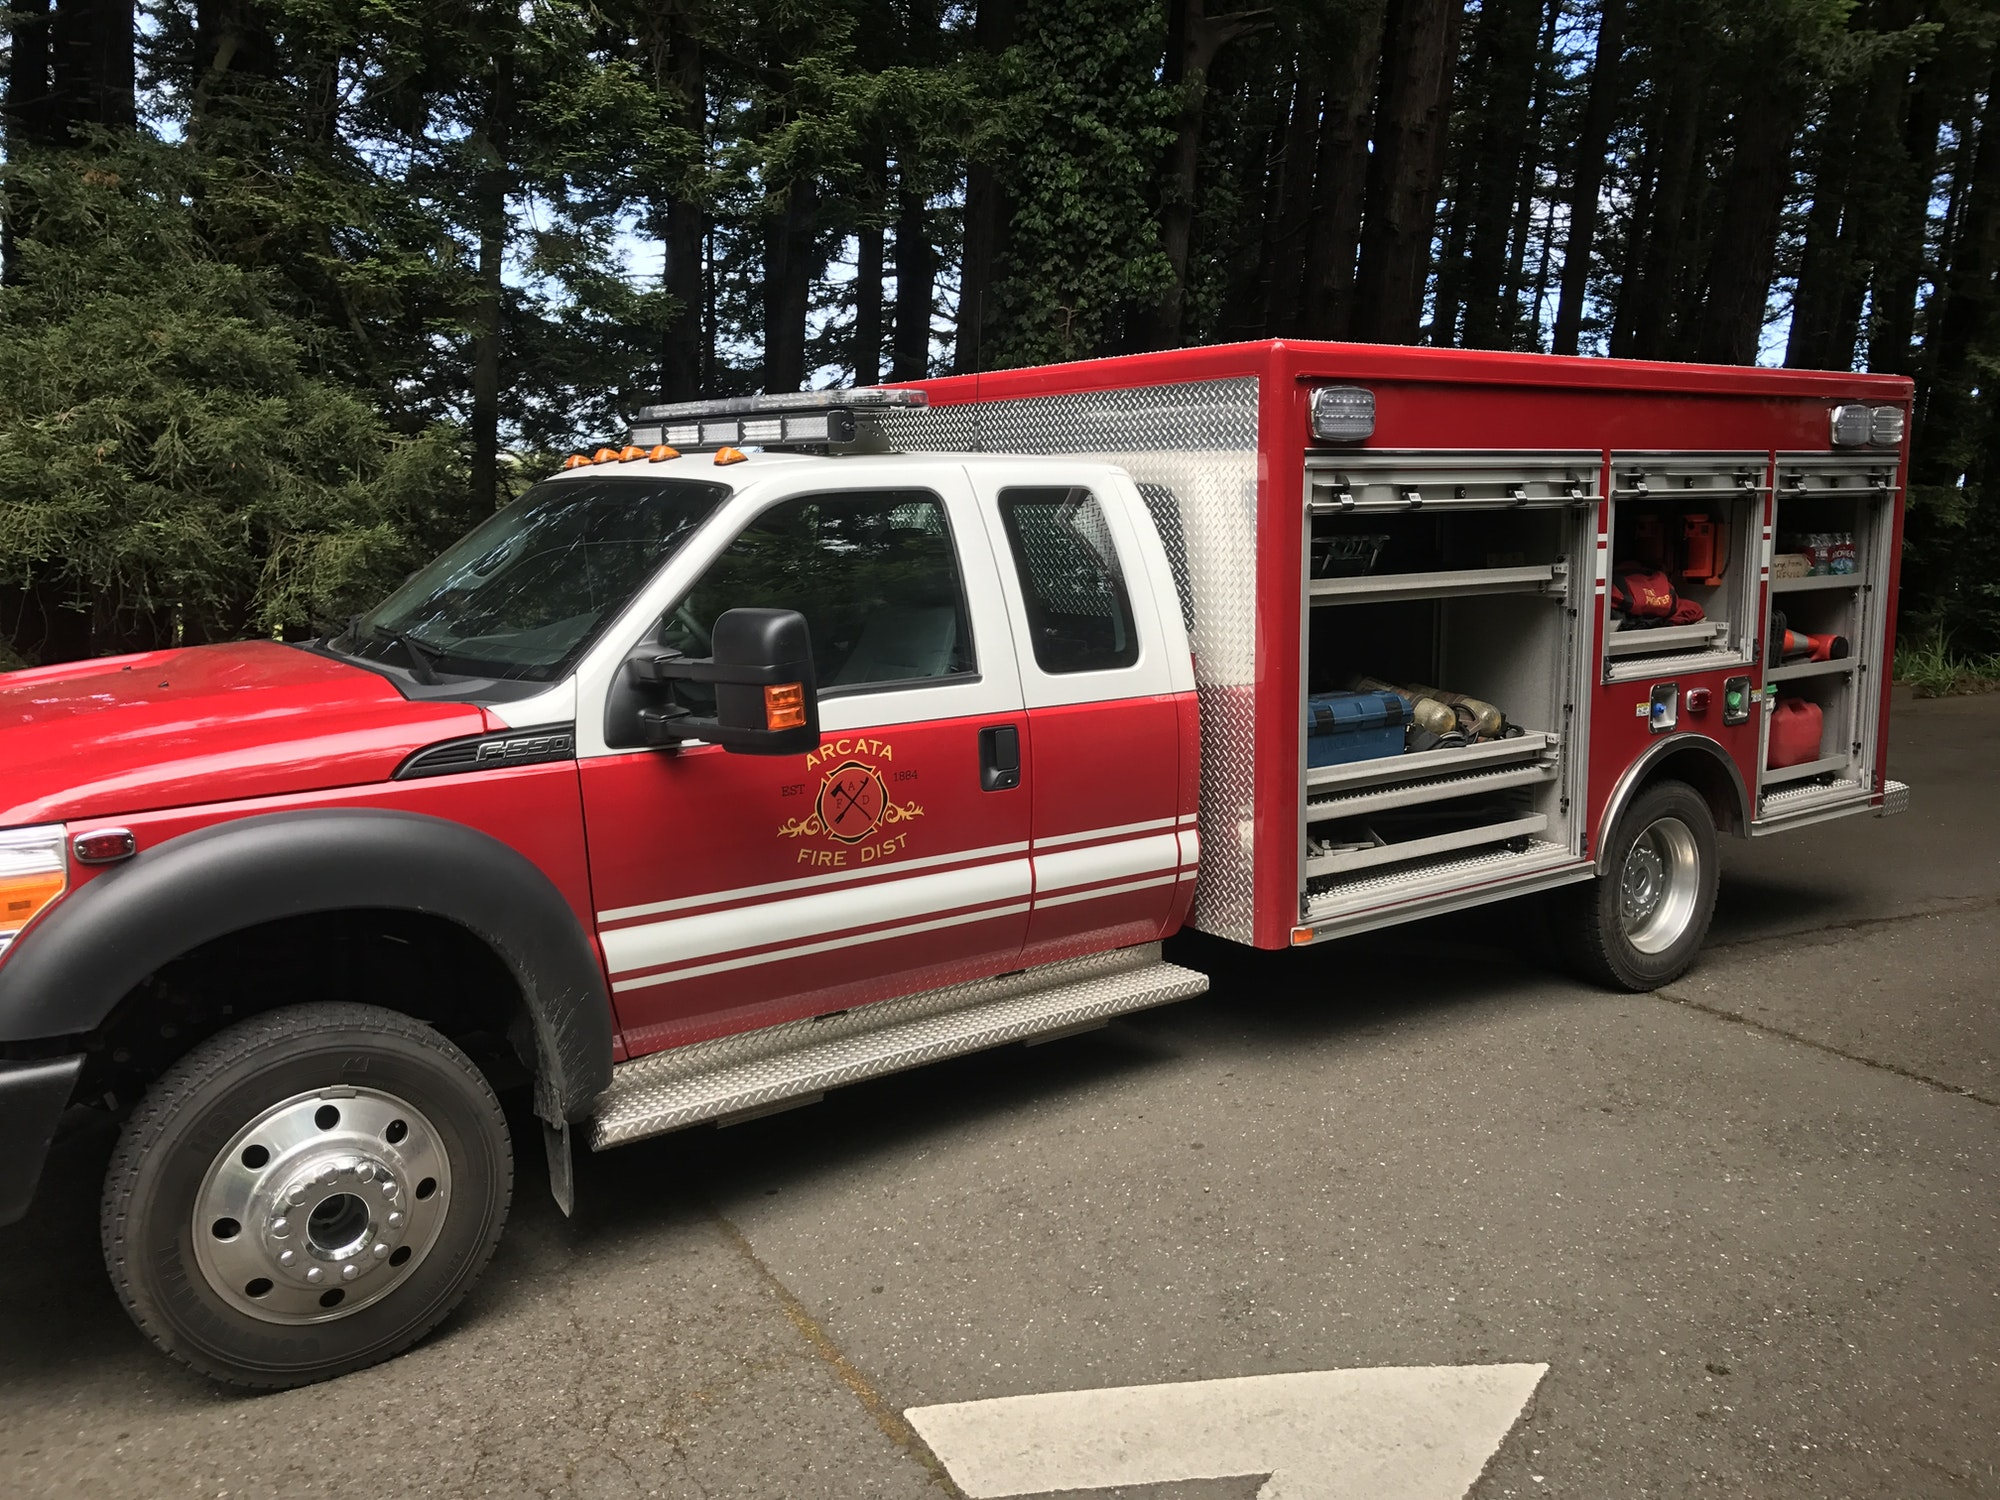 Photo of Rescue 8274 with compartments open